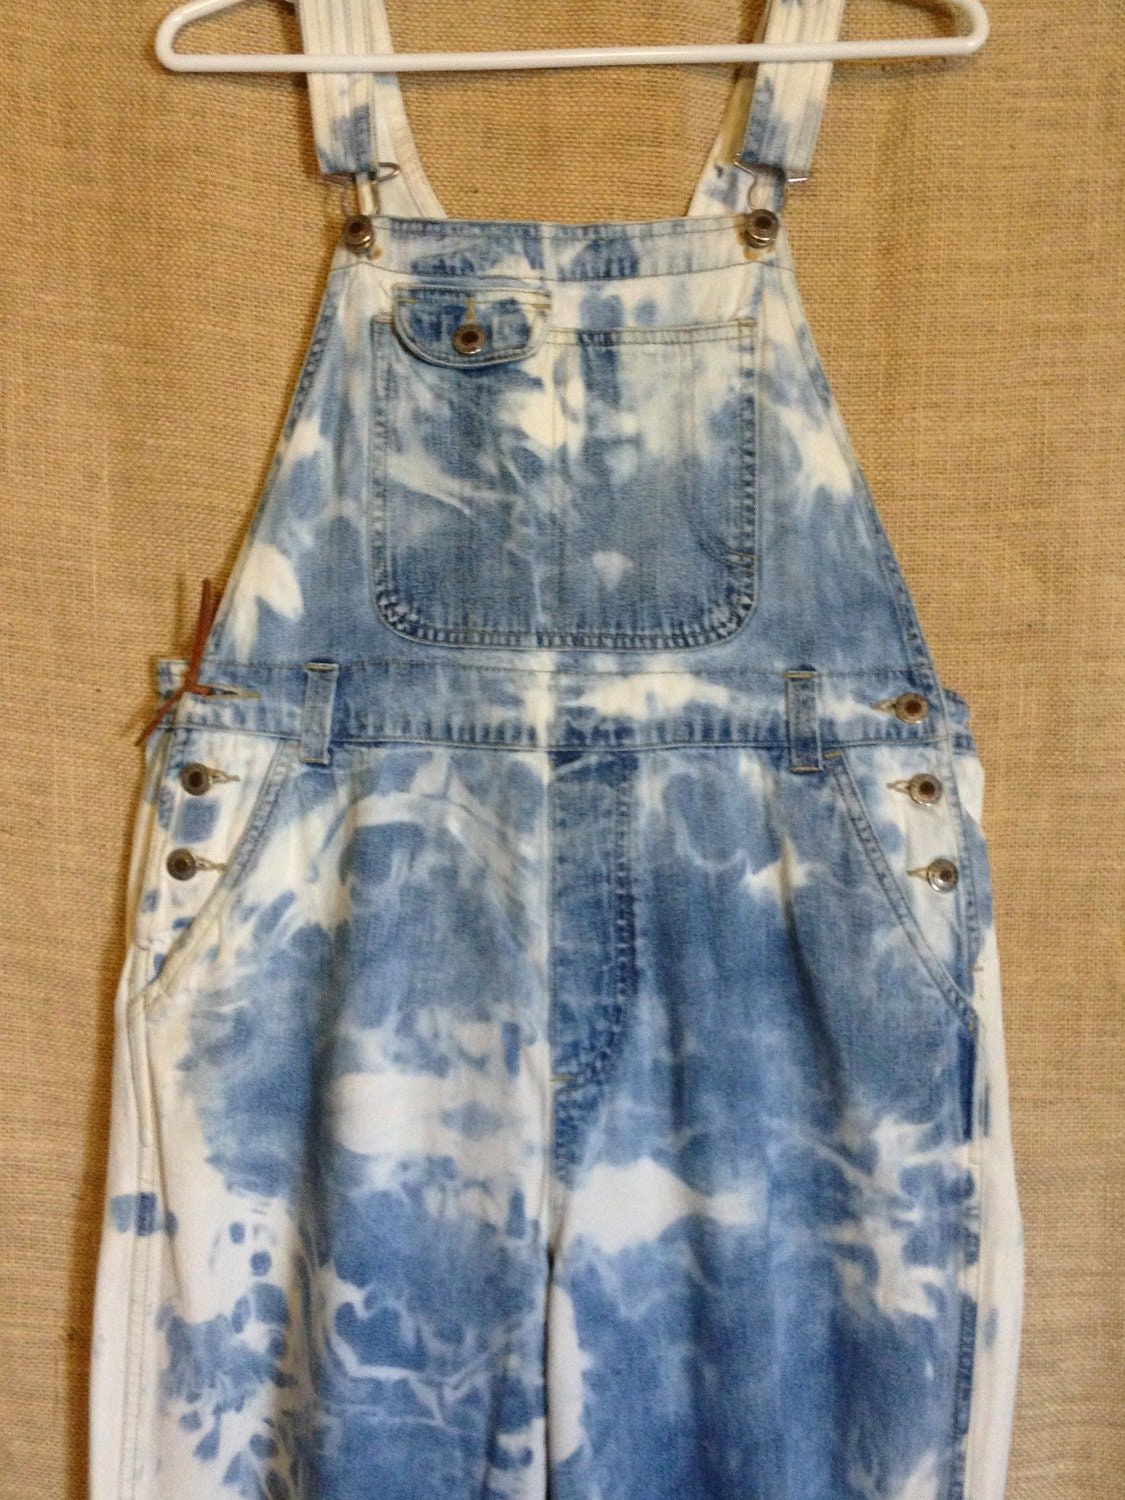 Overalls Are Making A Comeback As The Latest Fashion Trend: 80s Denim Stonewashed Overalls Unisex